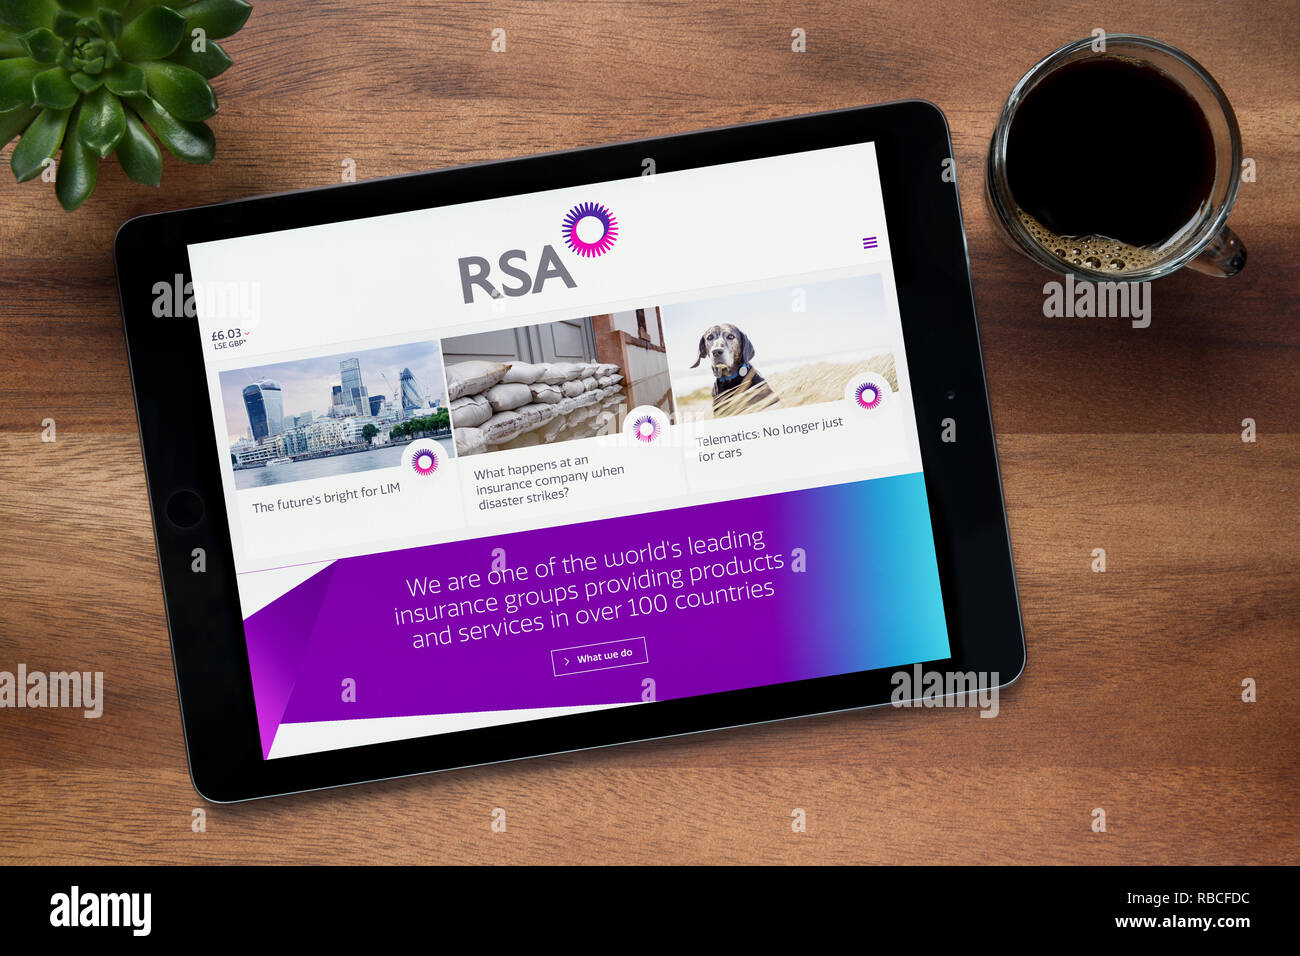 The website of RSA (Royal & Sun Alliance) is seen on an iPad tablet, resting on a wooden (Editorial use only). - Stock Image